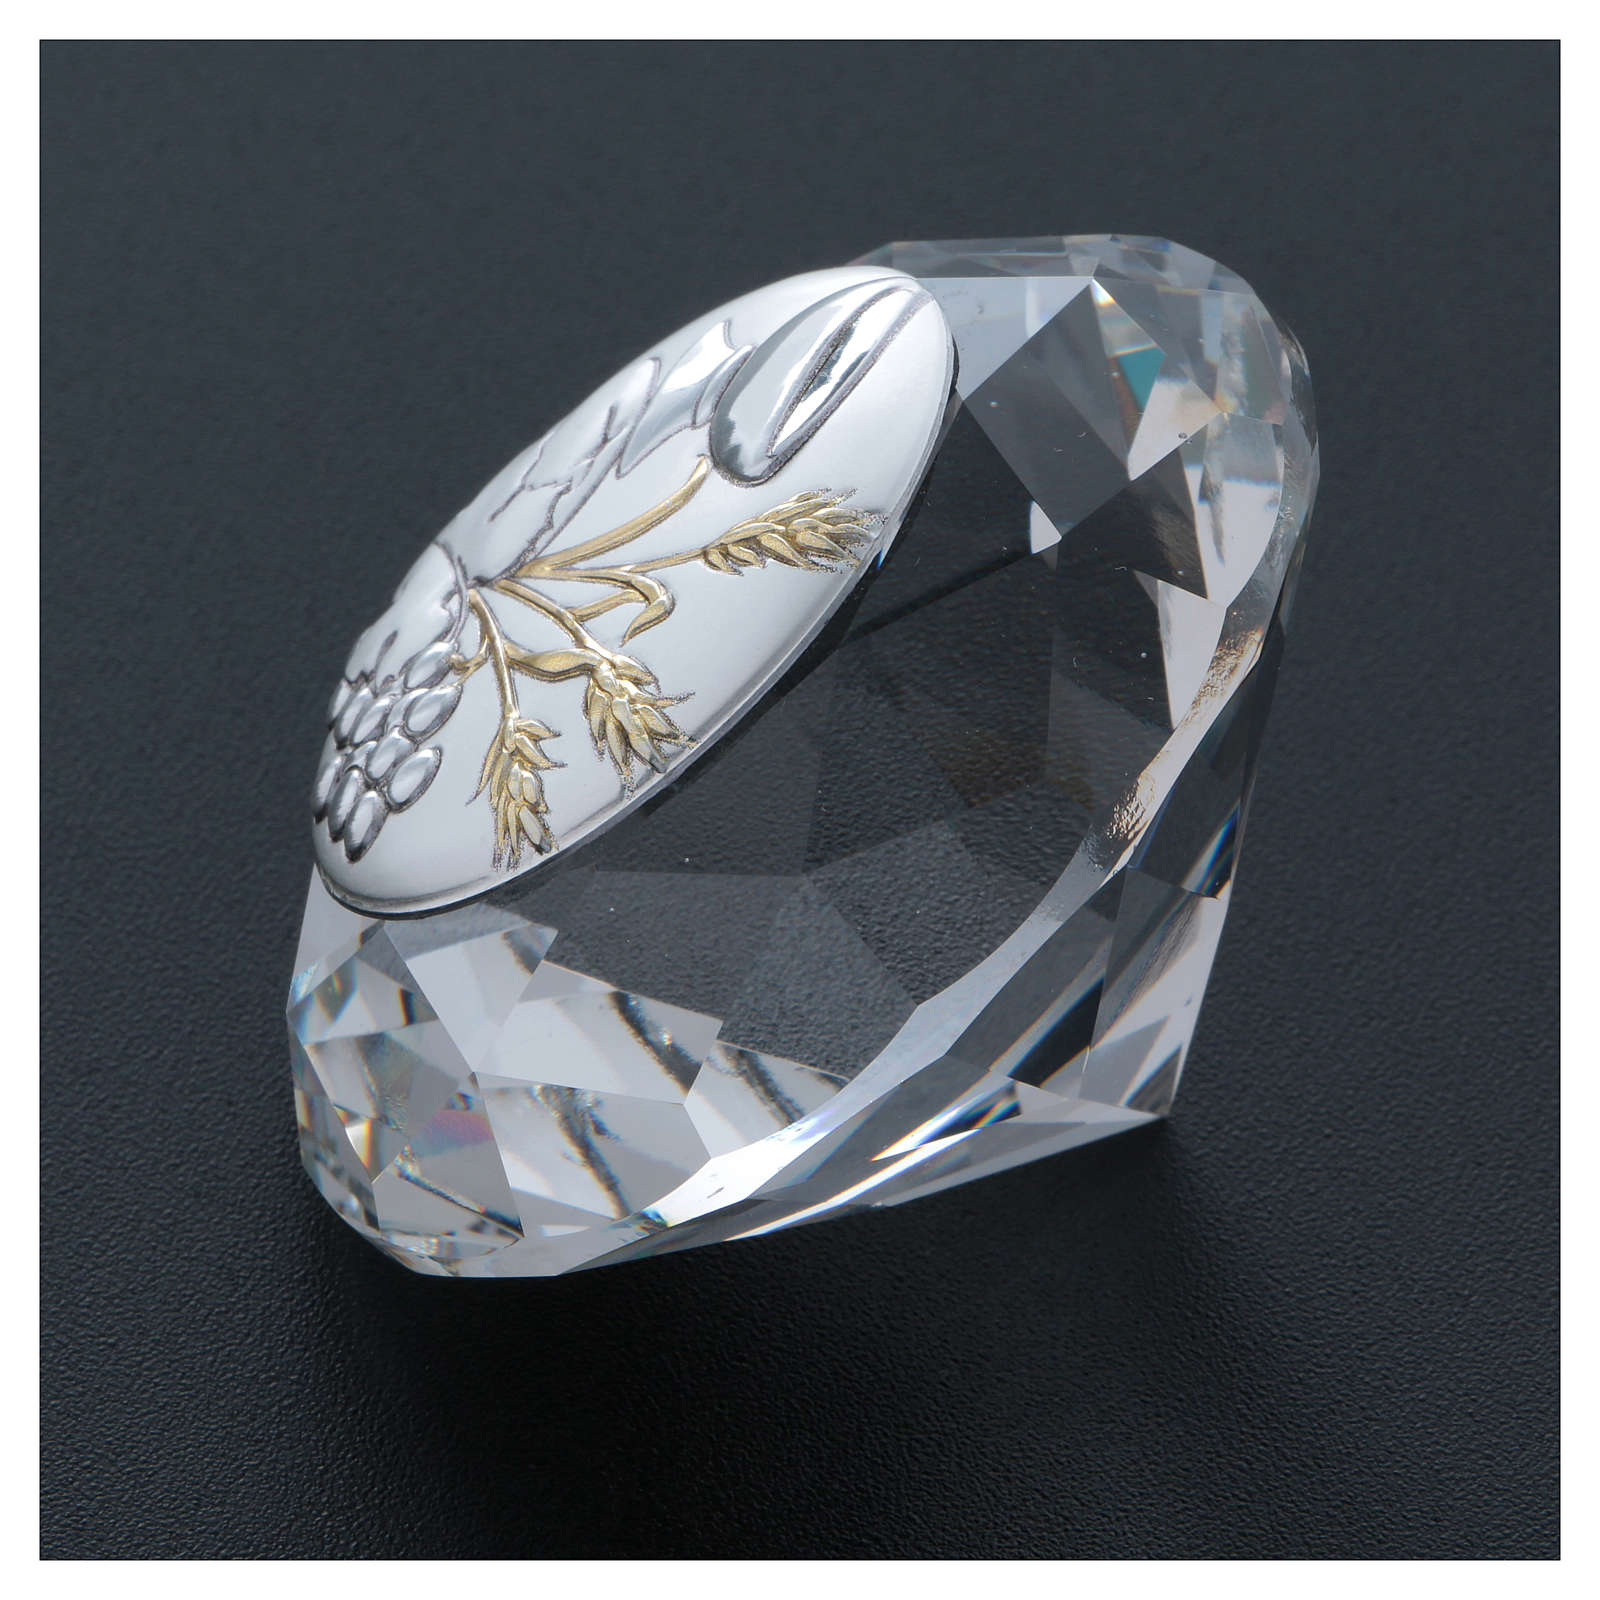 Wheat ear, chalice and grapes crystal diamond with metal plate 4 cm 3